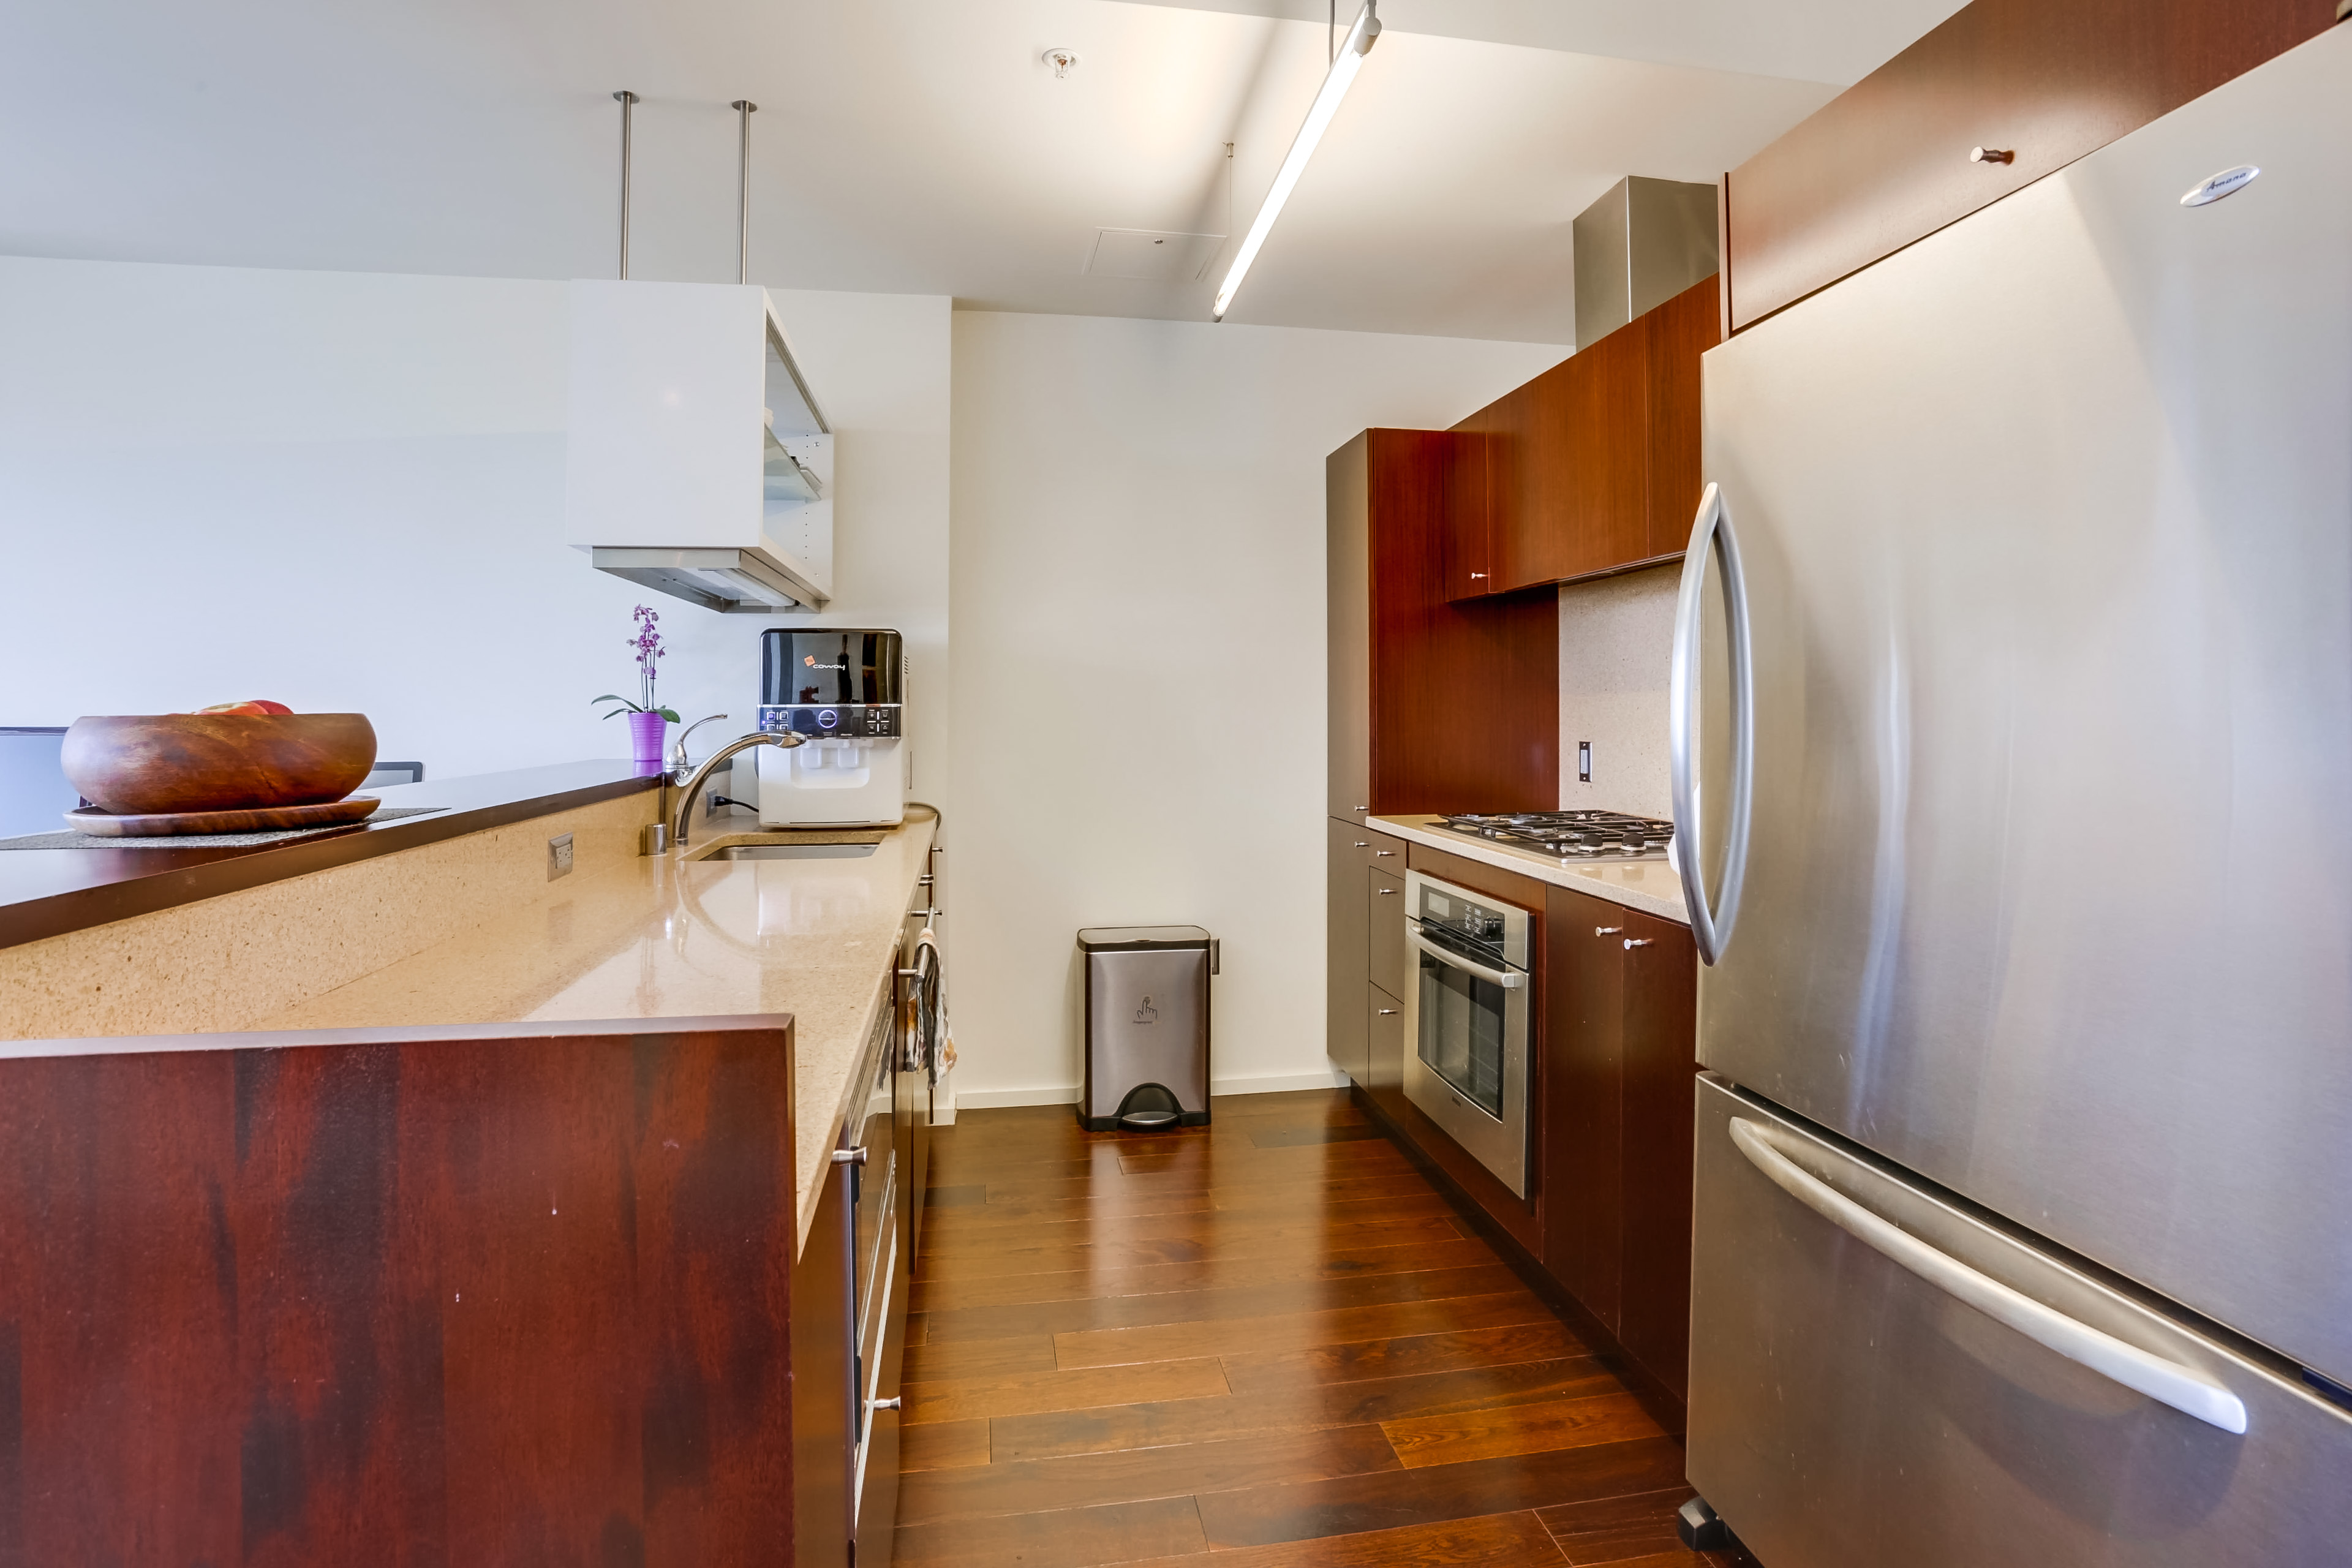 1155-s-grand-ave-1014-017